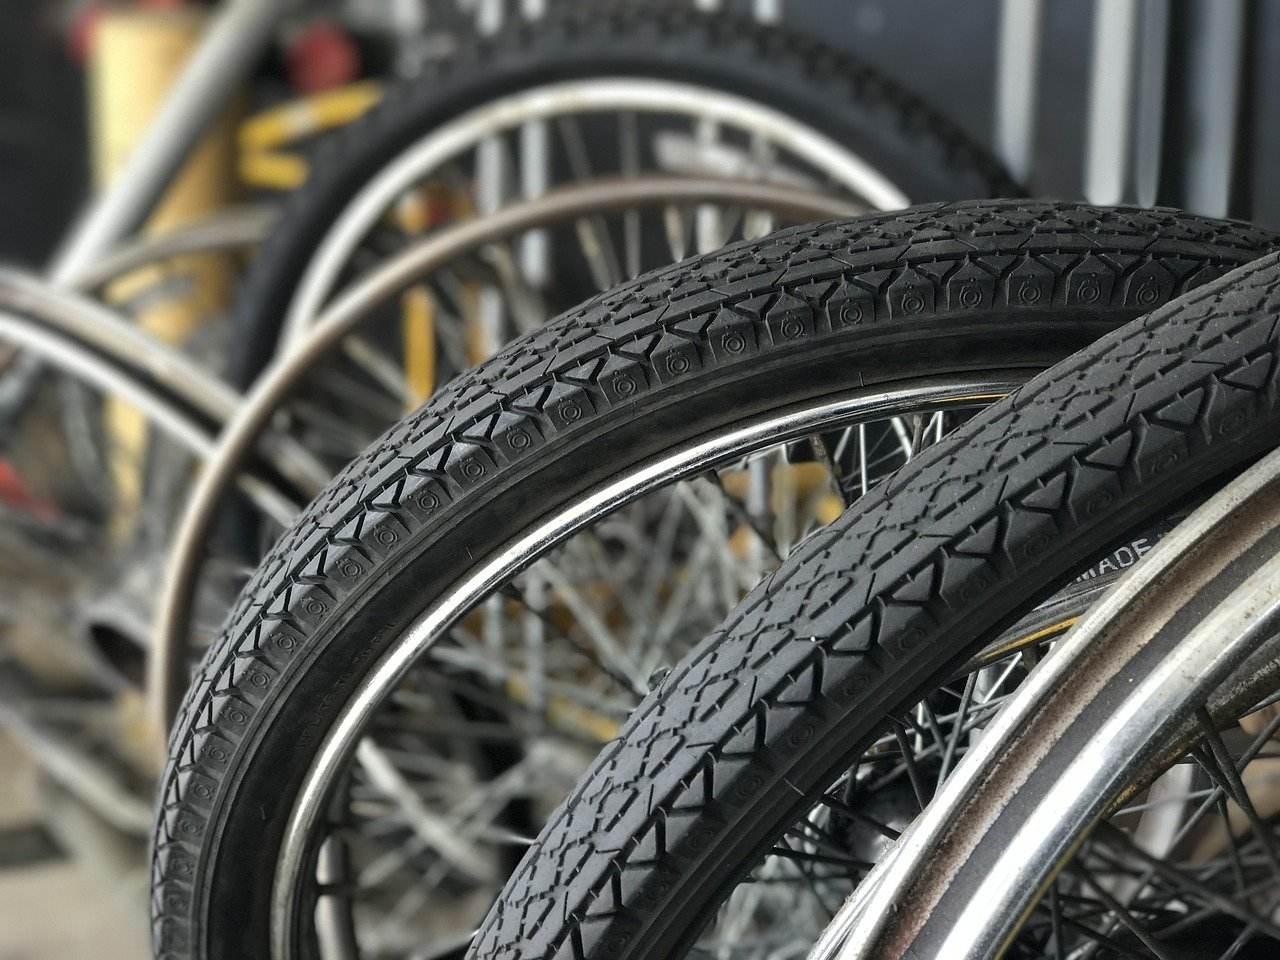 a close up of bike wheels and tires